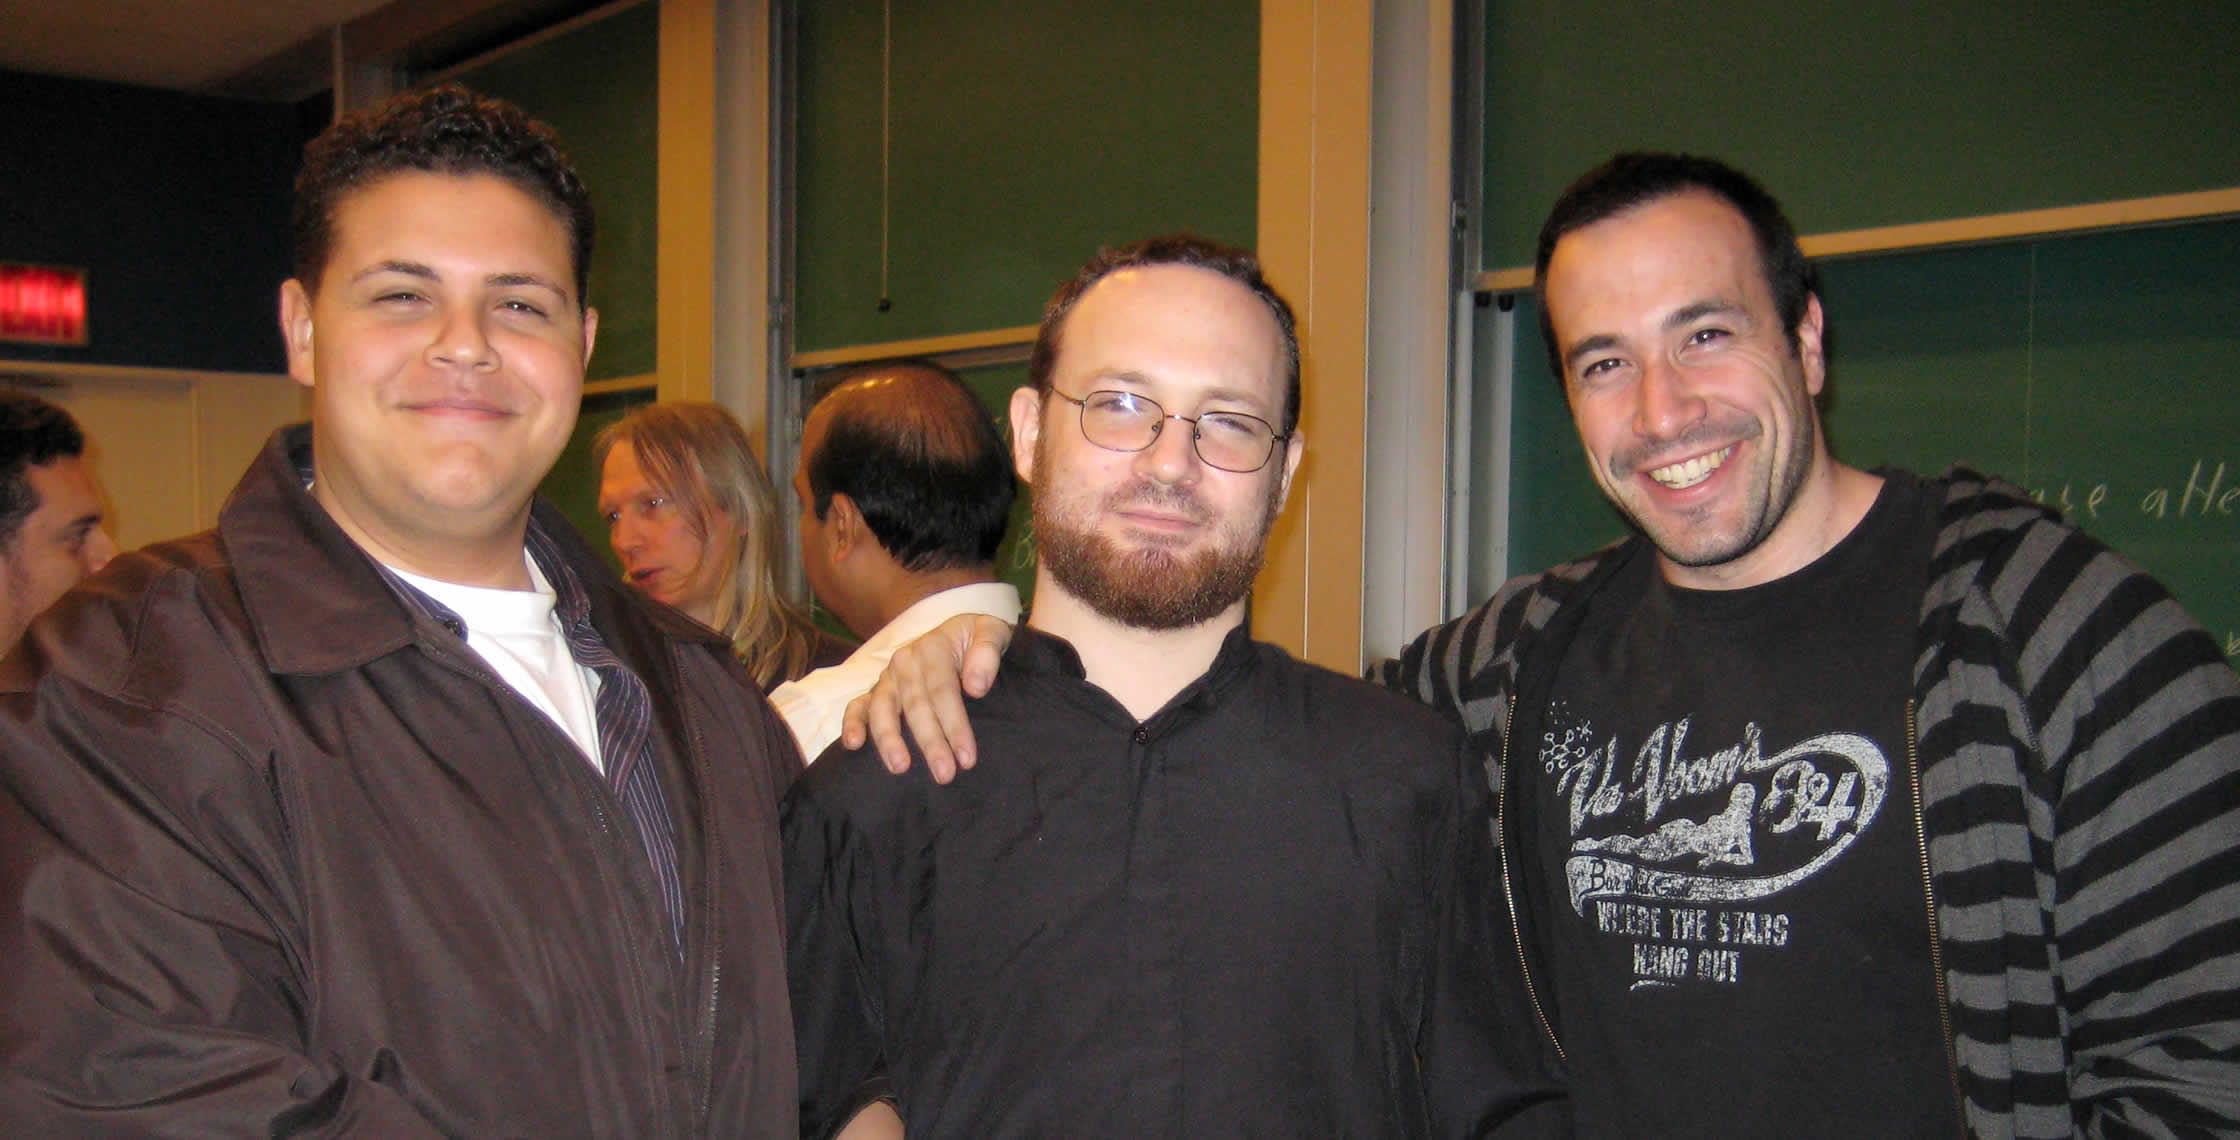 Ben Nadel at the New York ColdFusion User Group (May. 2008) with: Clark Valberg and Michael Dinowitz